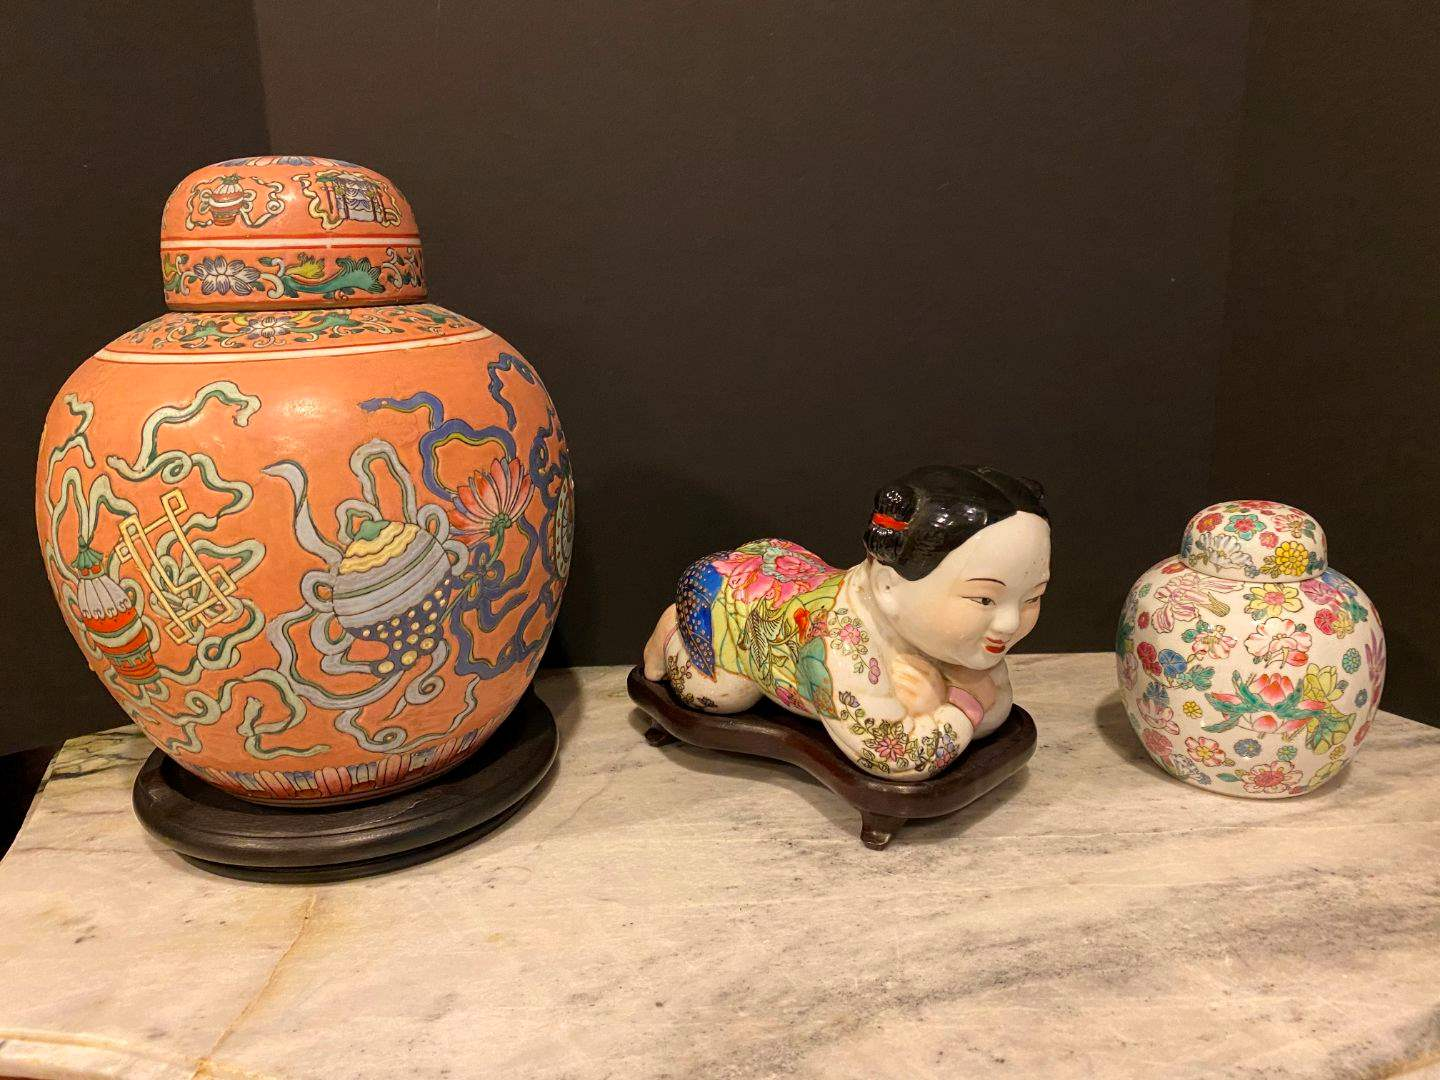 Lot # 145 - Two Hand Painted Asian Ginger Jars & Ceramic Asian Figurine  (main image)